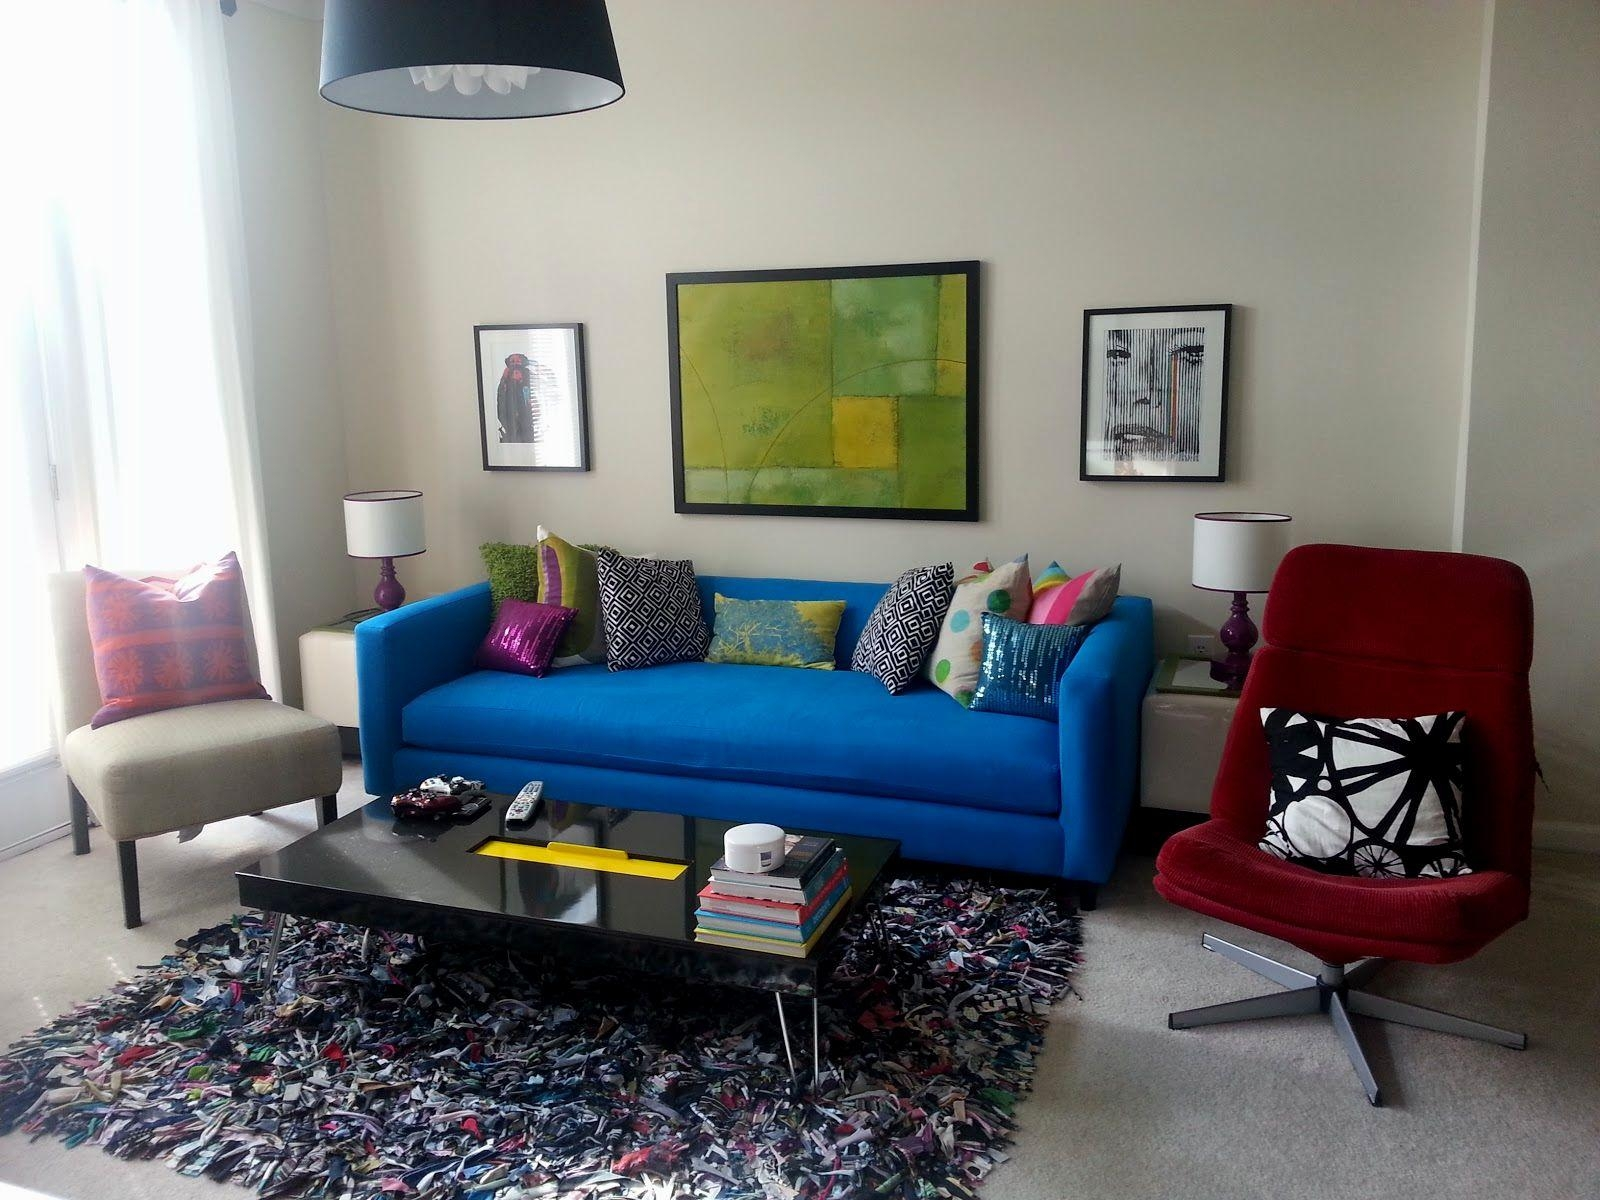 Interesting Cb2 Piazza Sofa 96 For Your Small Room Home Remodel intended for Cb2 Piazza Sofas